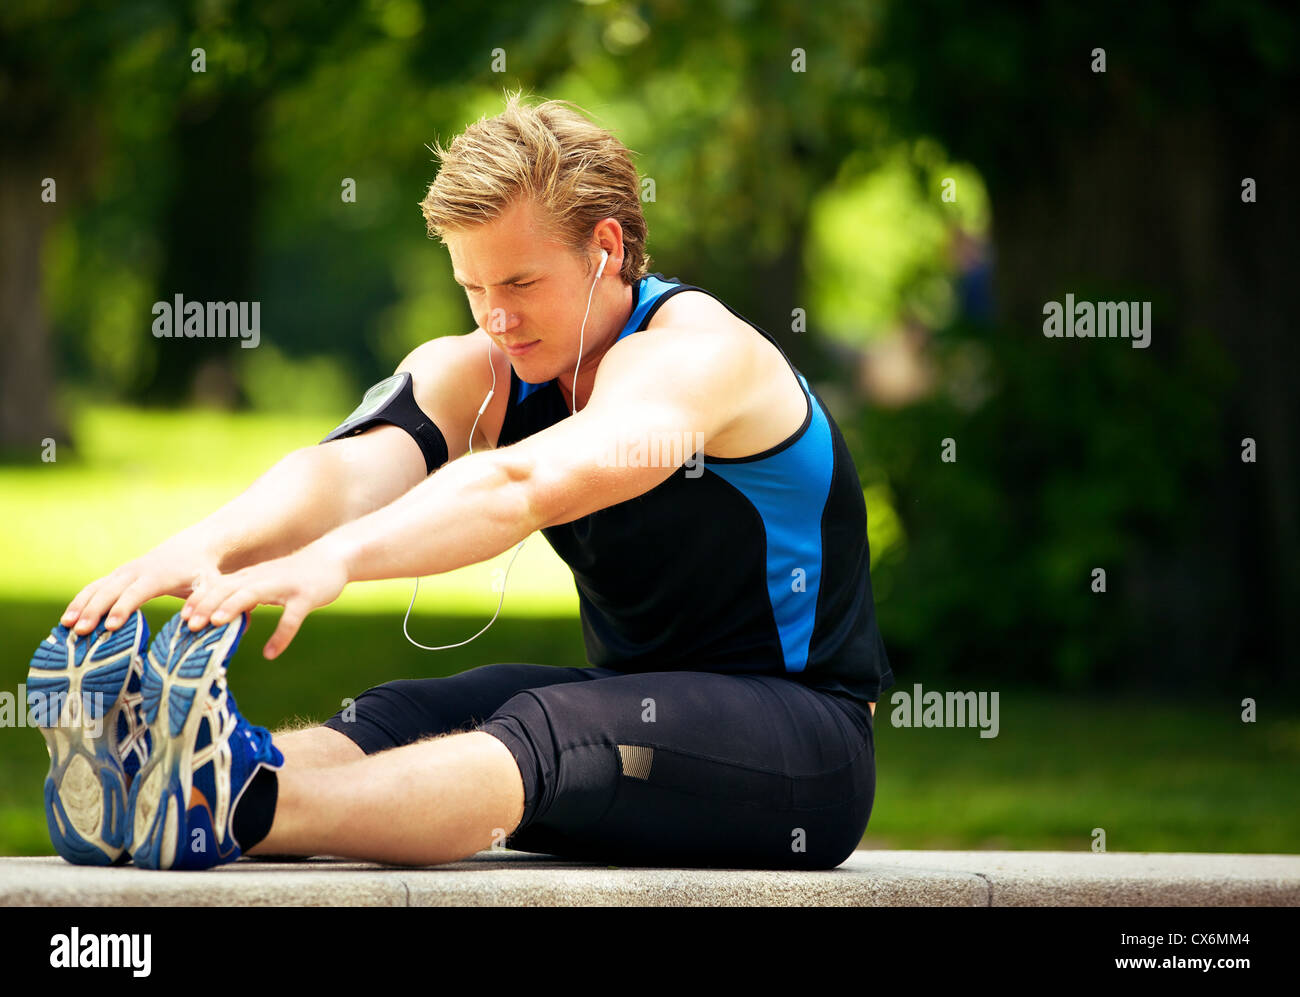 Attractive athlete doing his stretching exercise - Stock Image